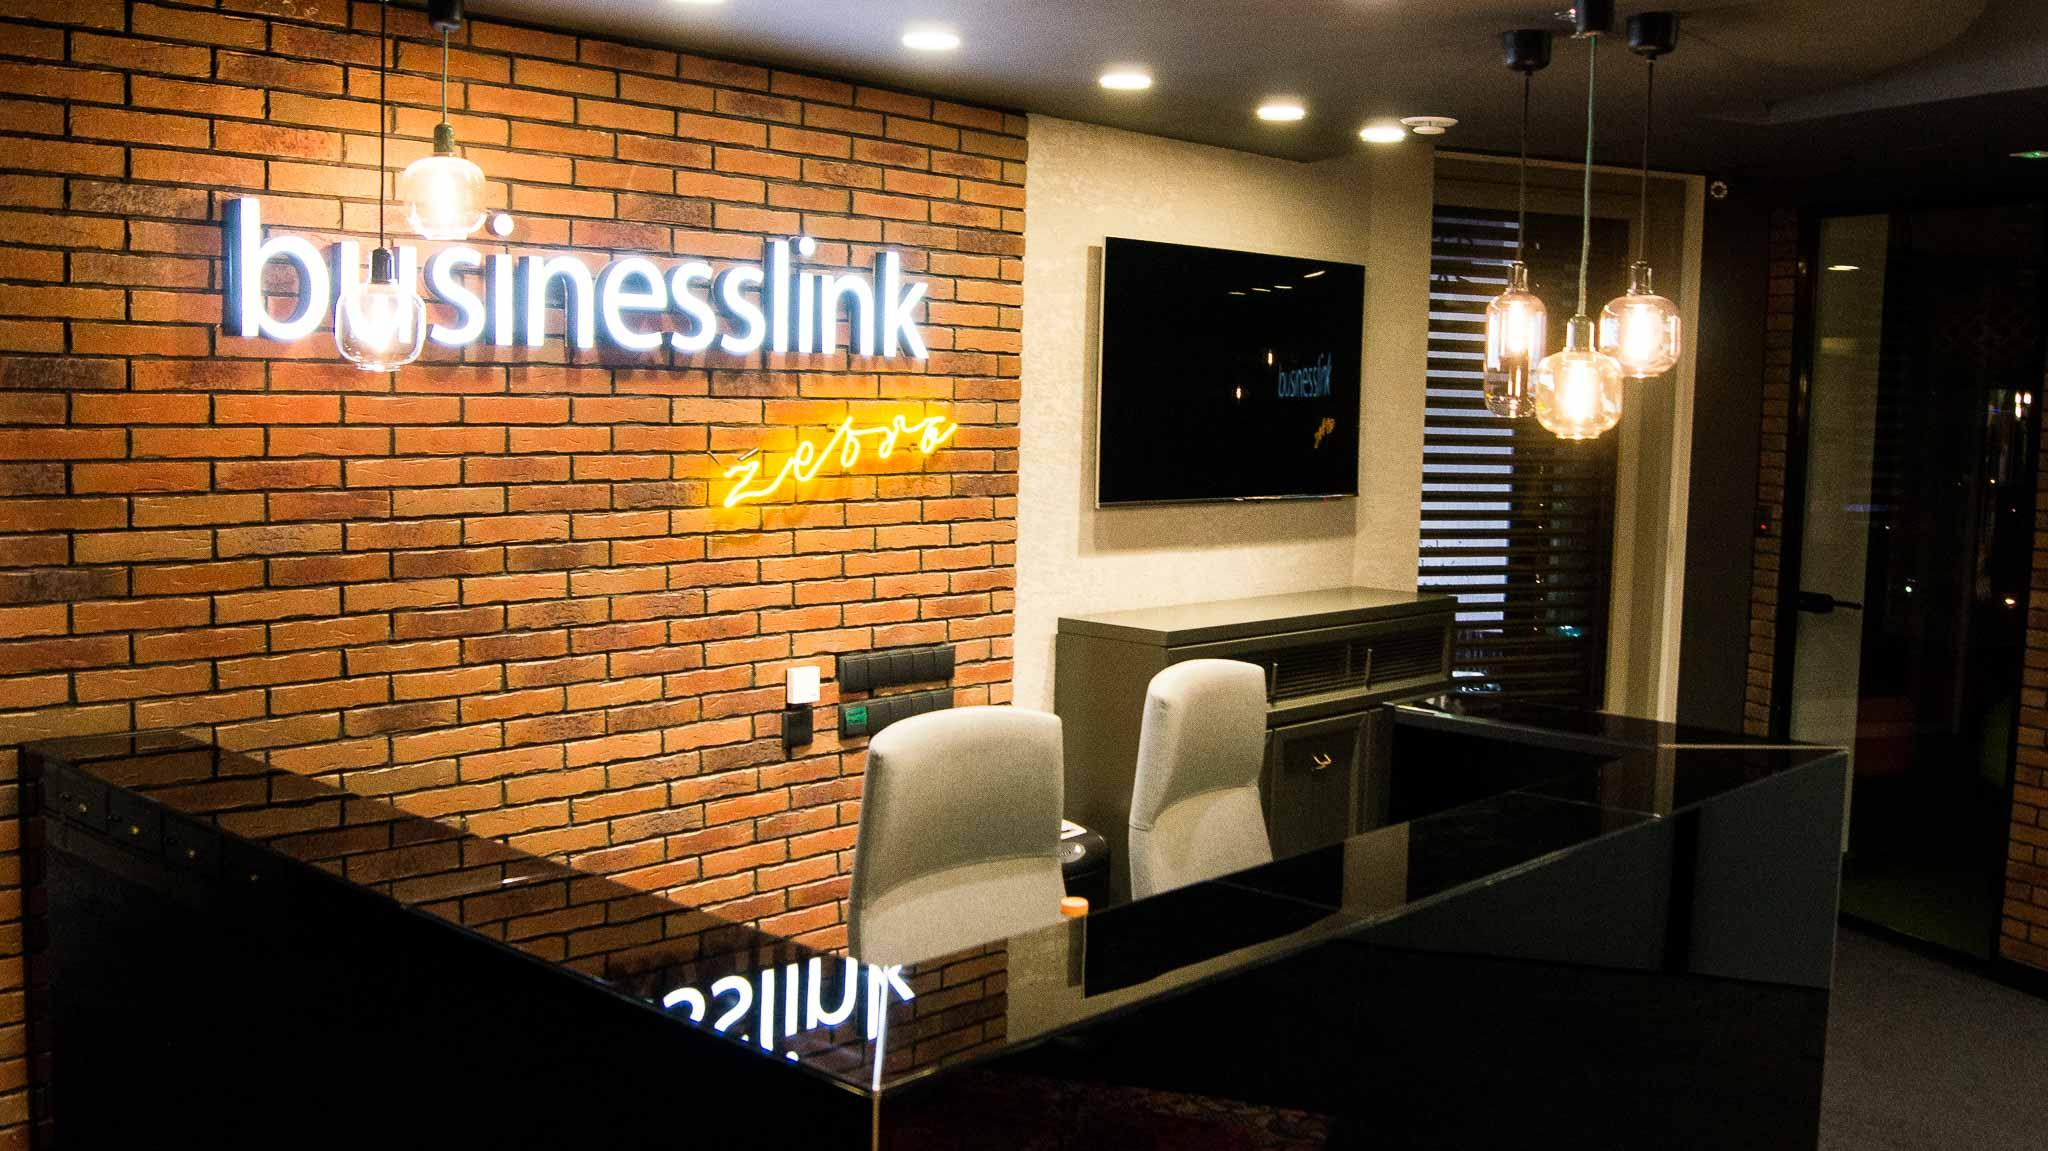 Business Link Nowa Zebra - Fully Serviced Office - Warszawa